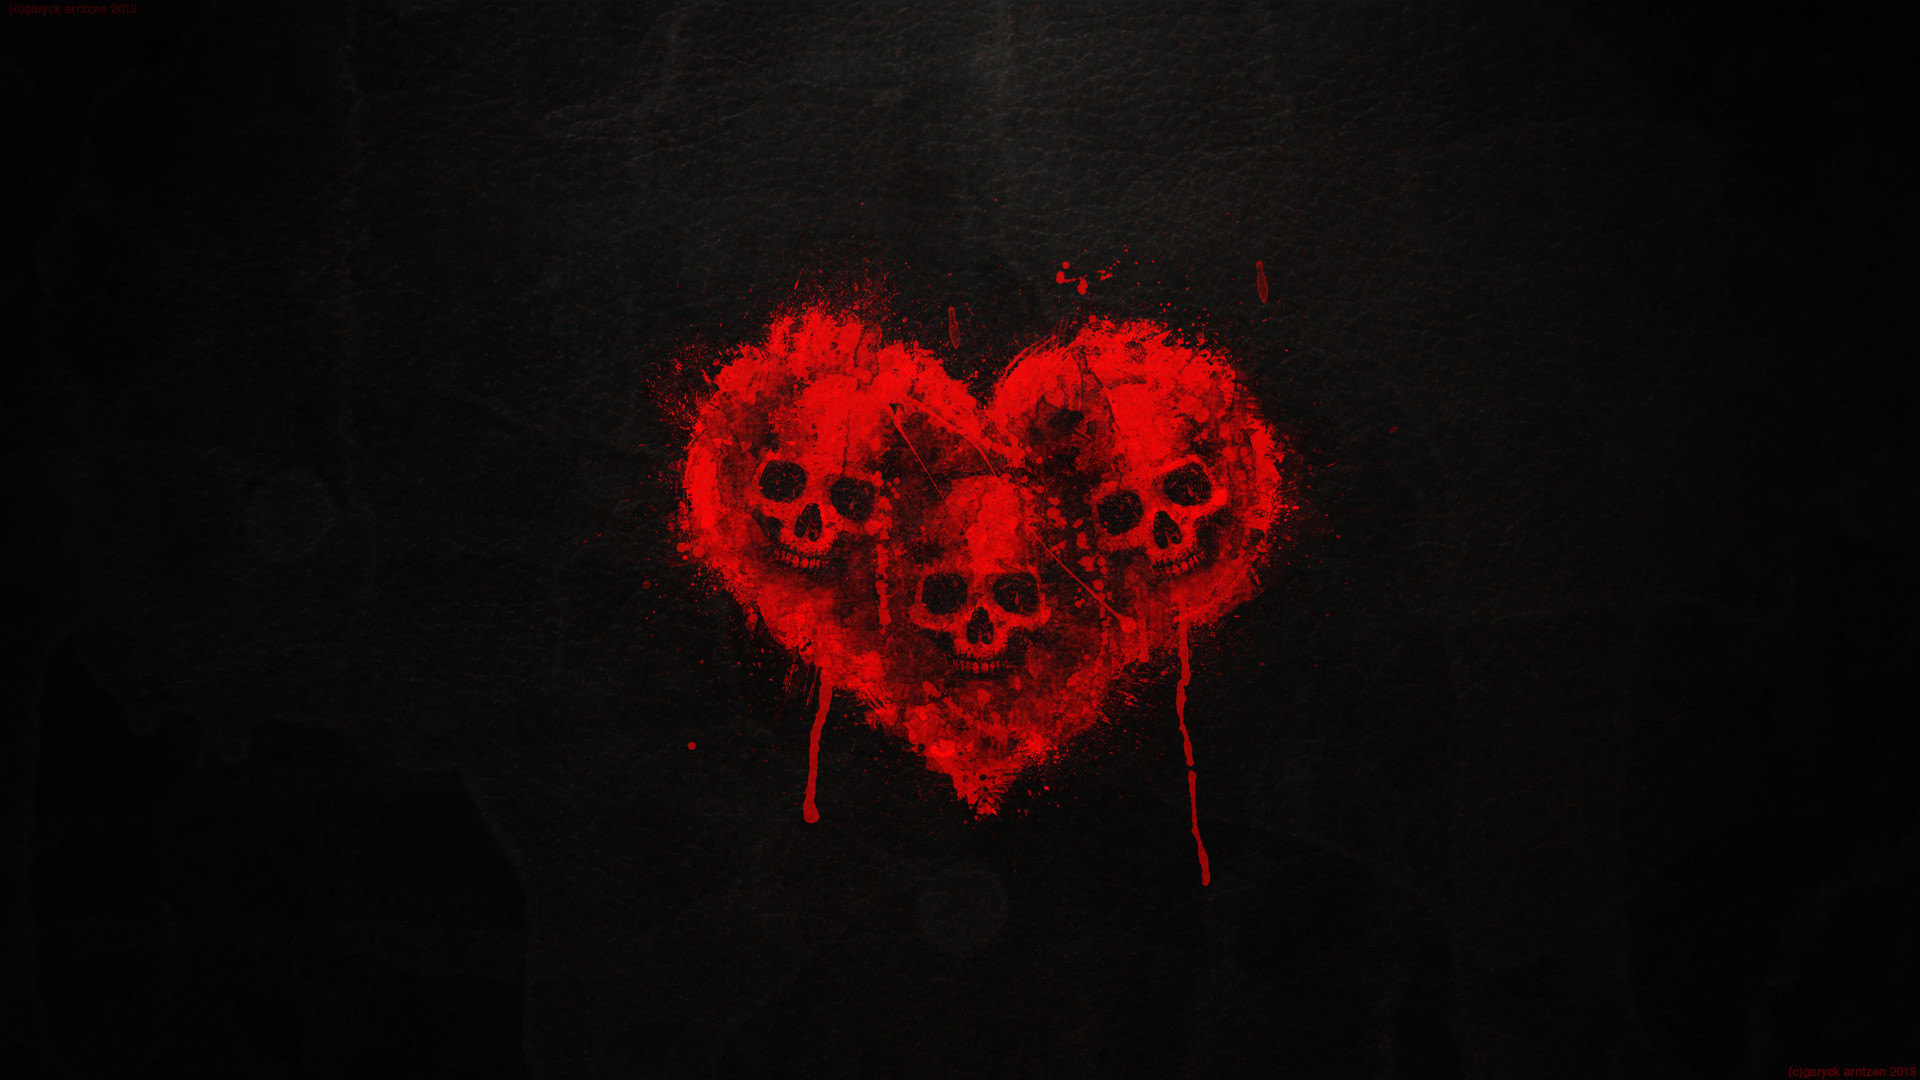 Bloody Heart Wallpaper (64+ images)